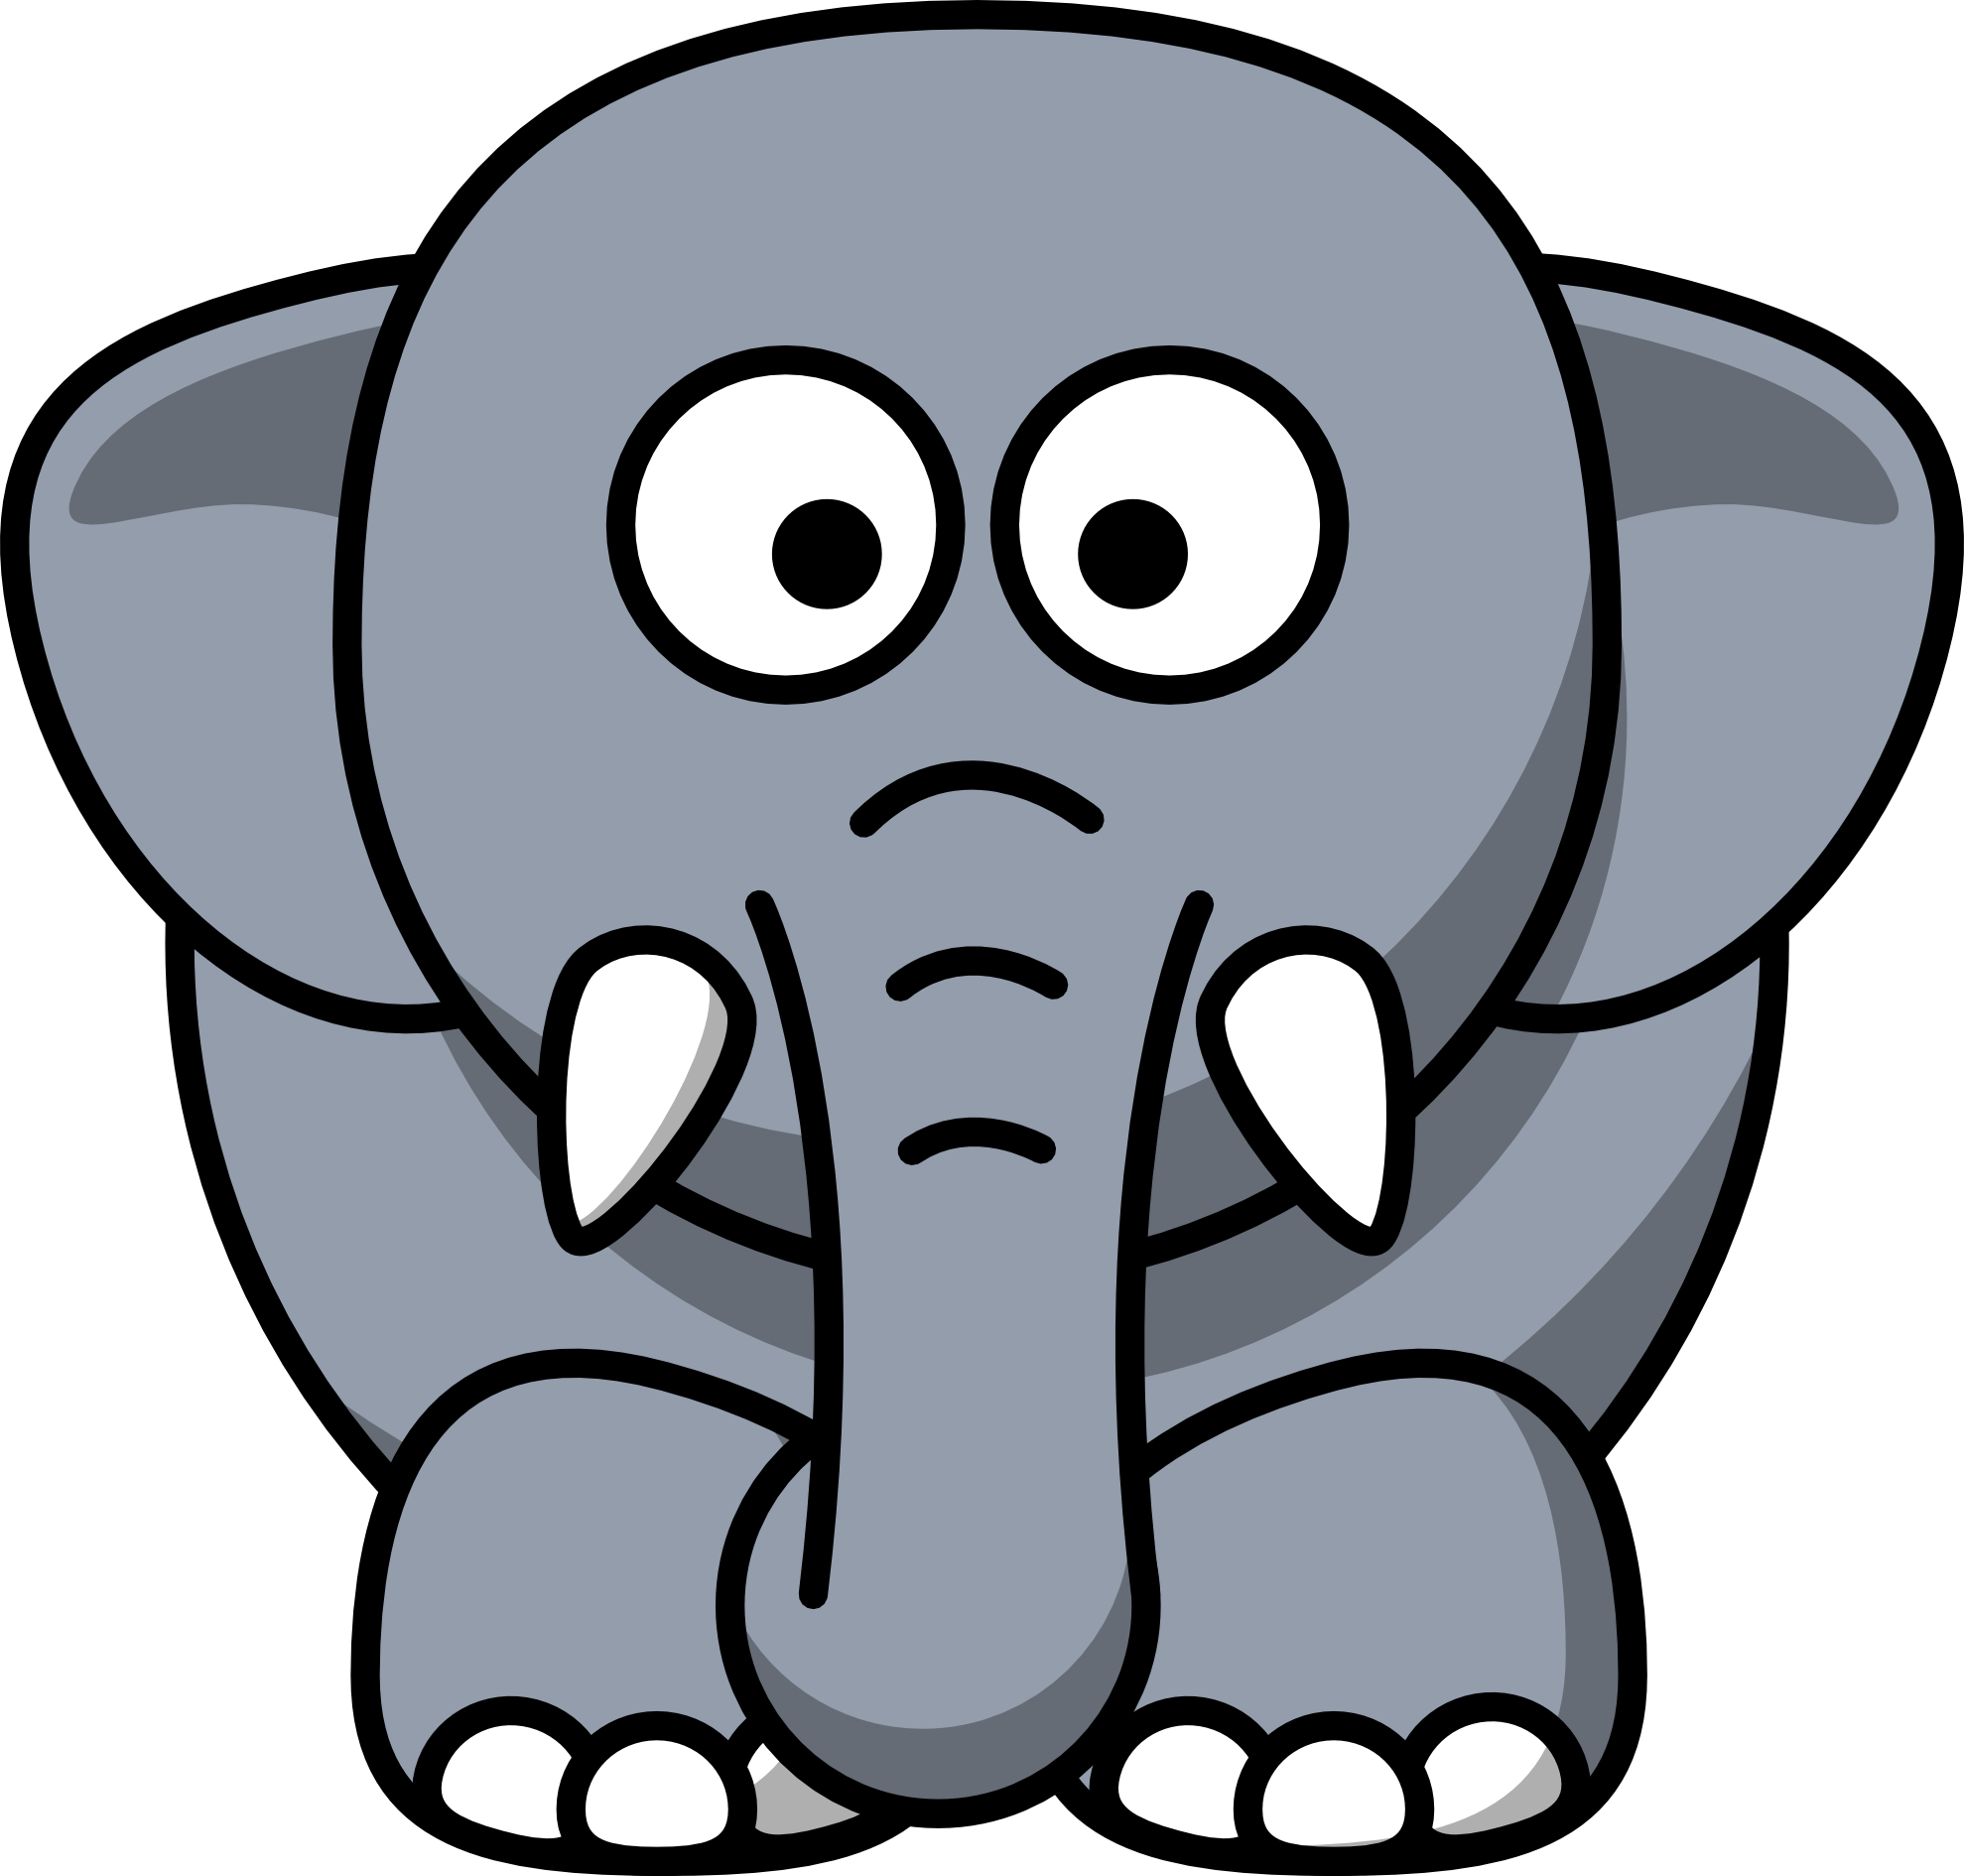 Free Images Elephant, Download Free Clip Art, Free Clip Art.